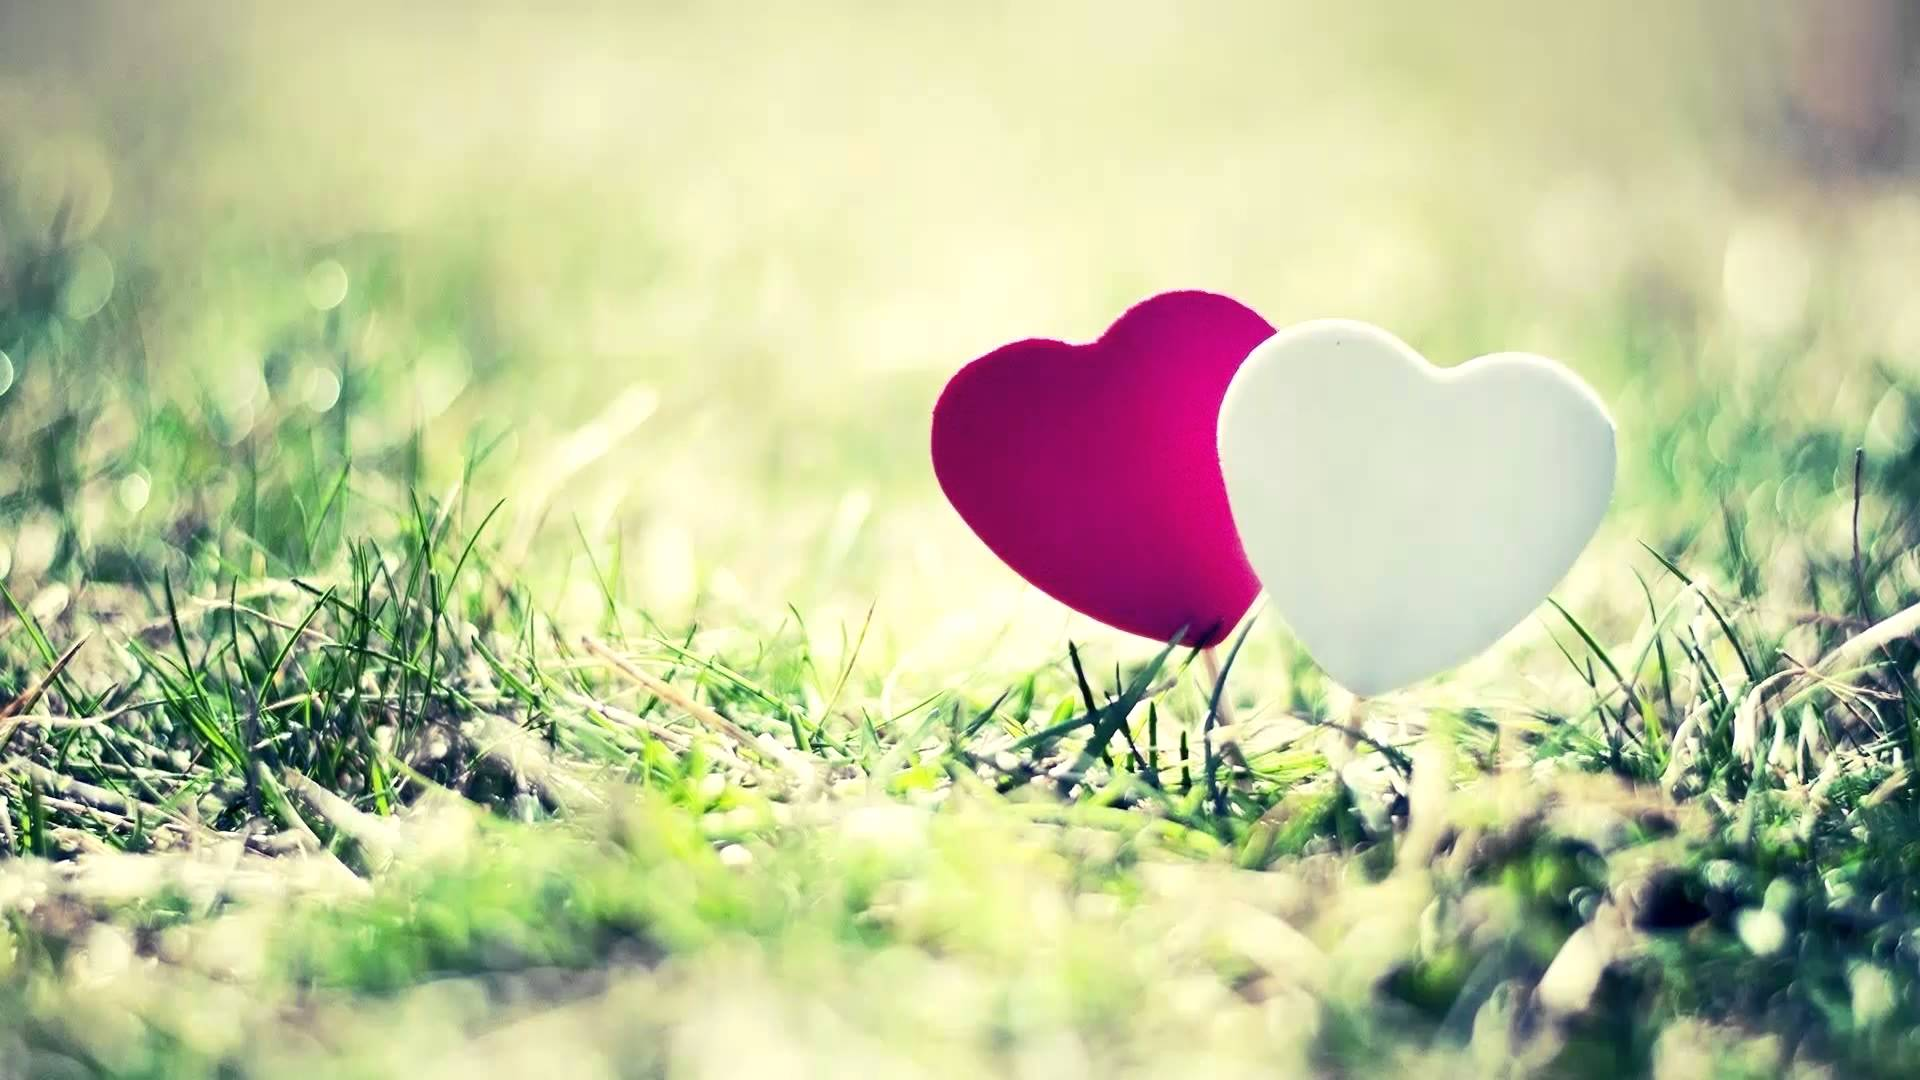 Love Hd Wallpapers Tumblr : Amazon.com: 10000+ Awesome Wallpapers Hd: Appstore for Android